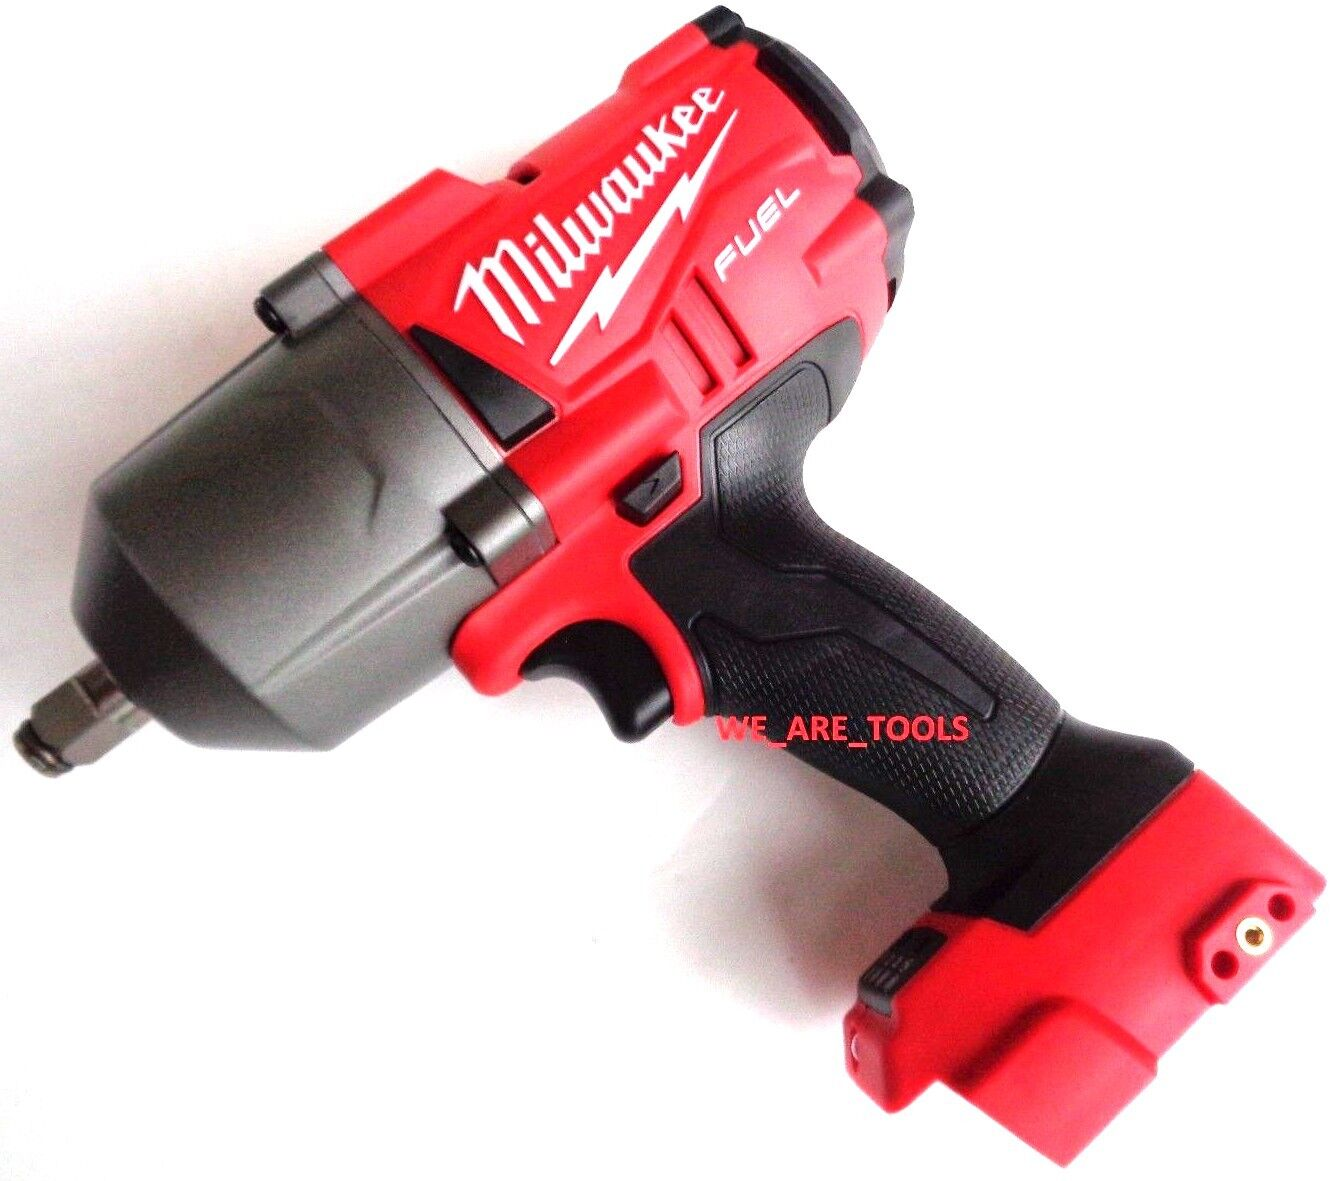 Milwaukee FUEL 2767-20 18V 1/2 Impact Wrench,(1) 48-11-1850 Battery, Charger M18 11